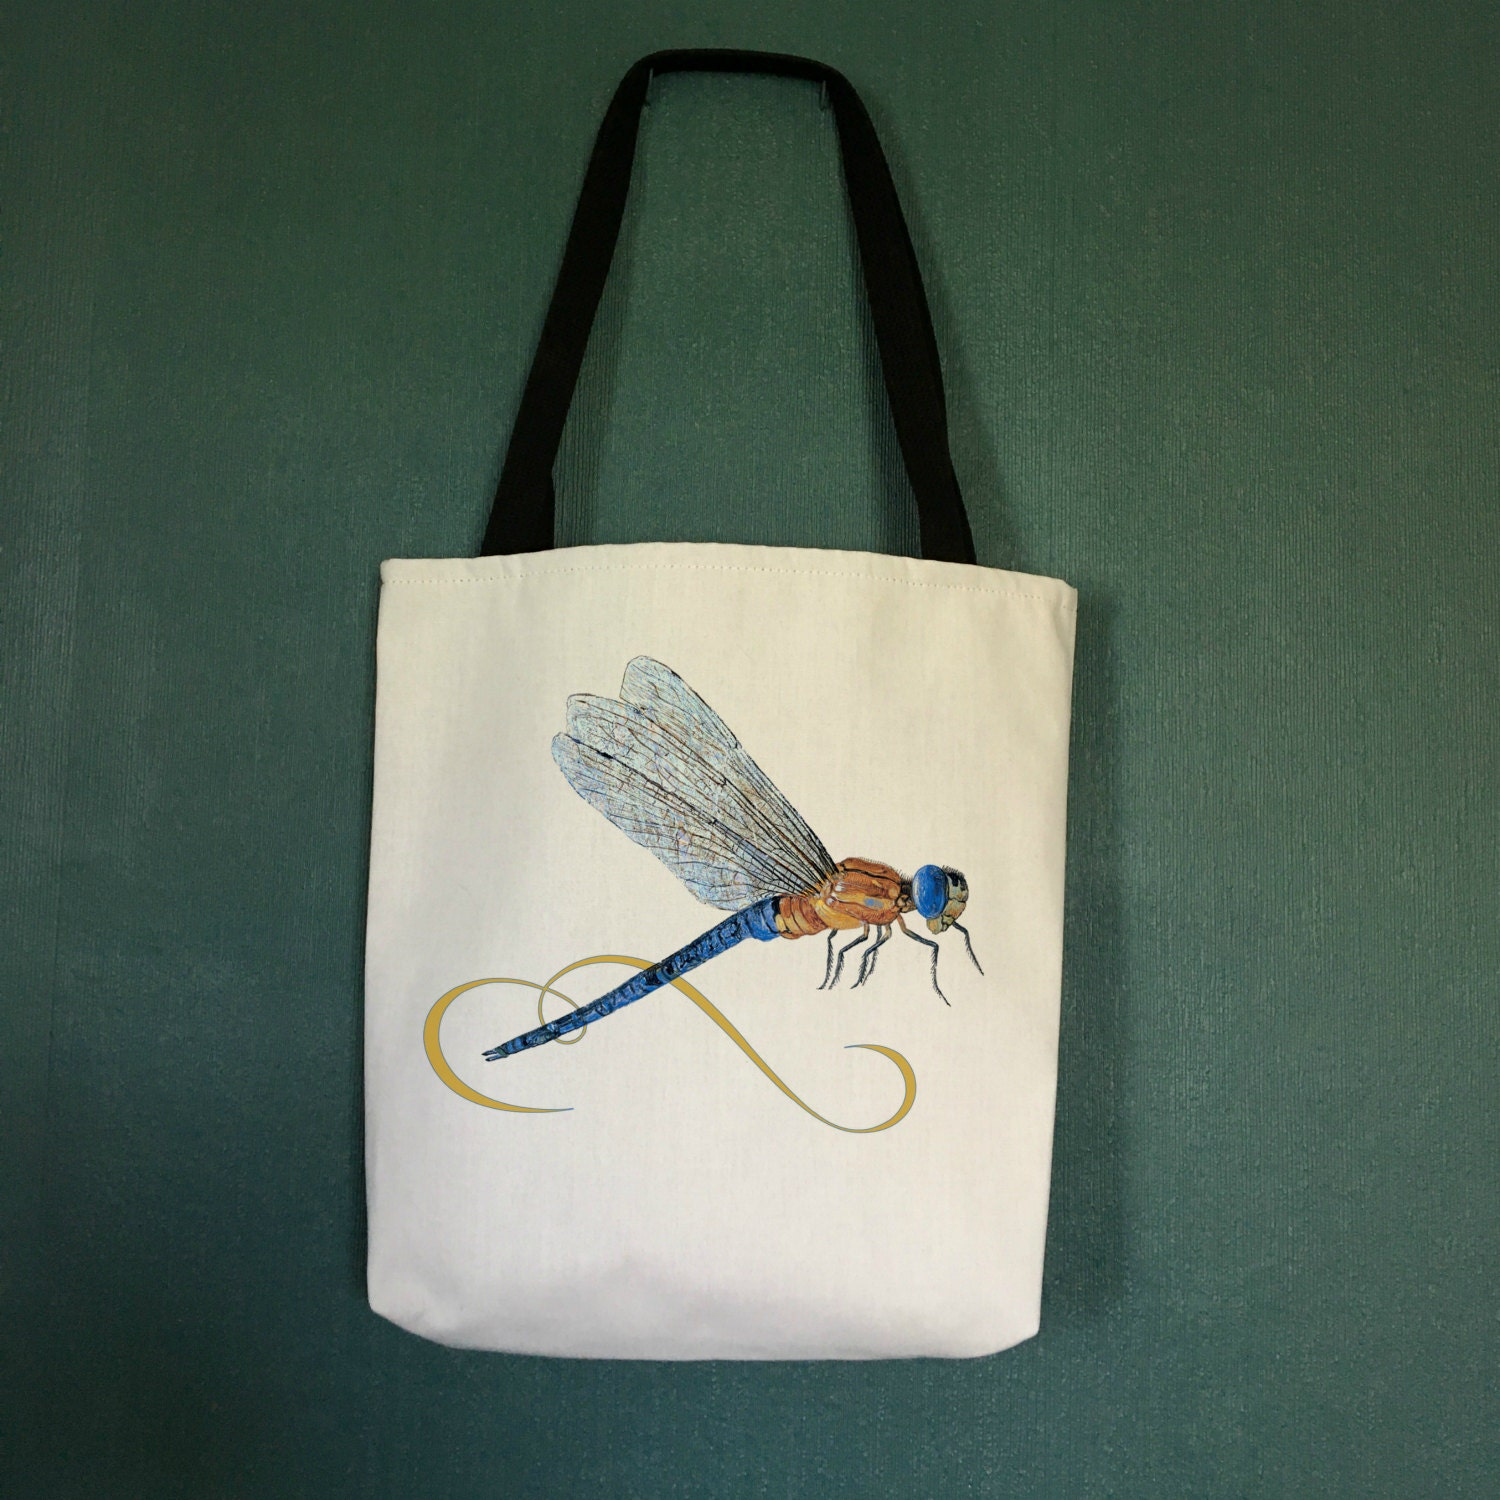 Unique Beach Tote Bag with Dragon Fly Design, Designer Beach Bag ...